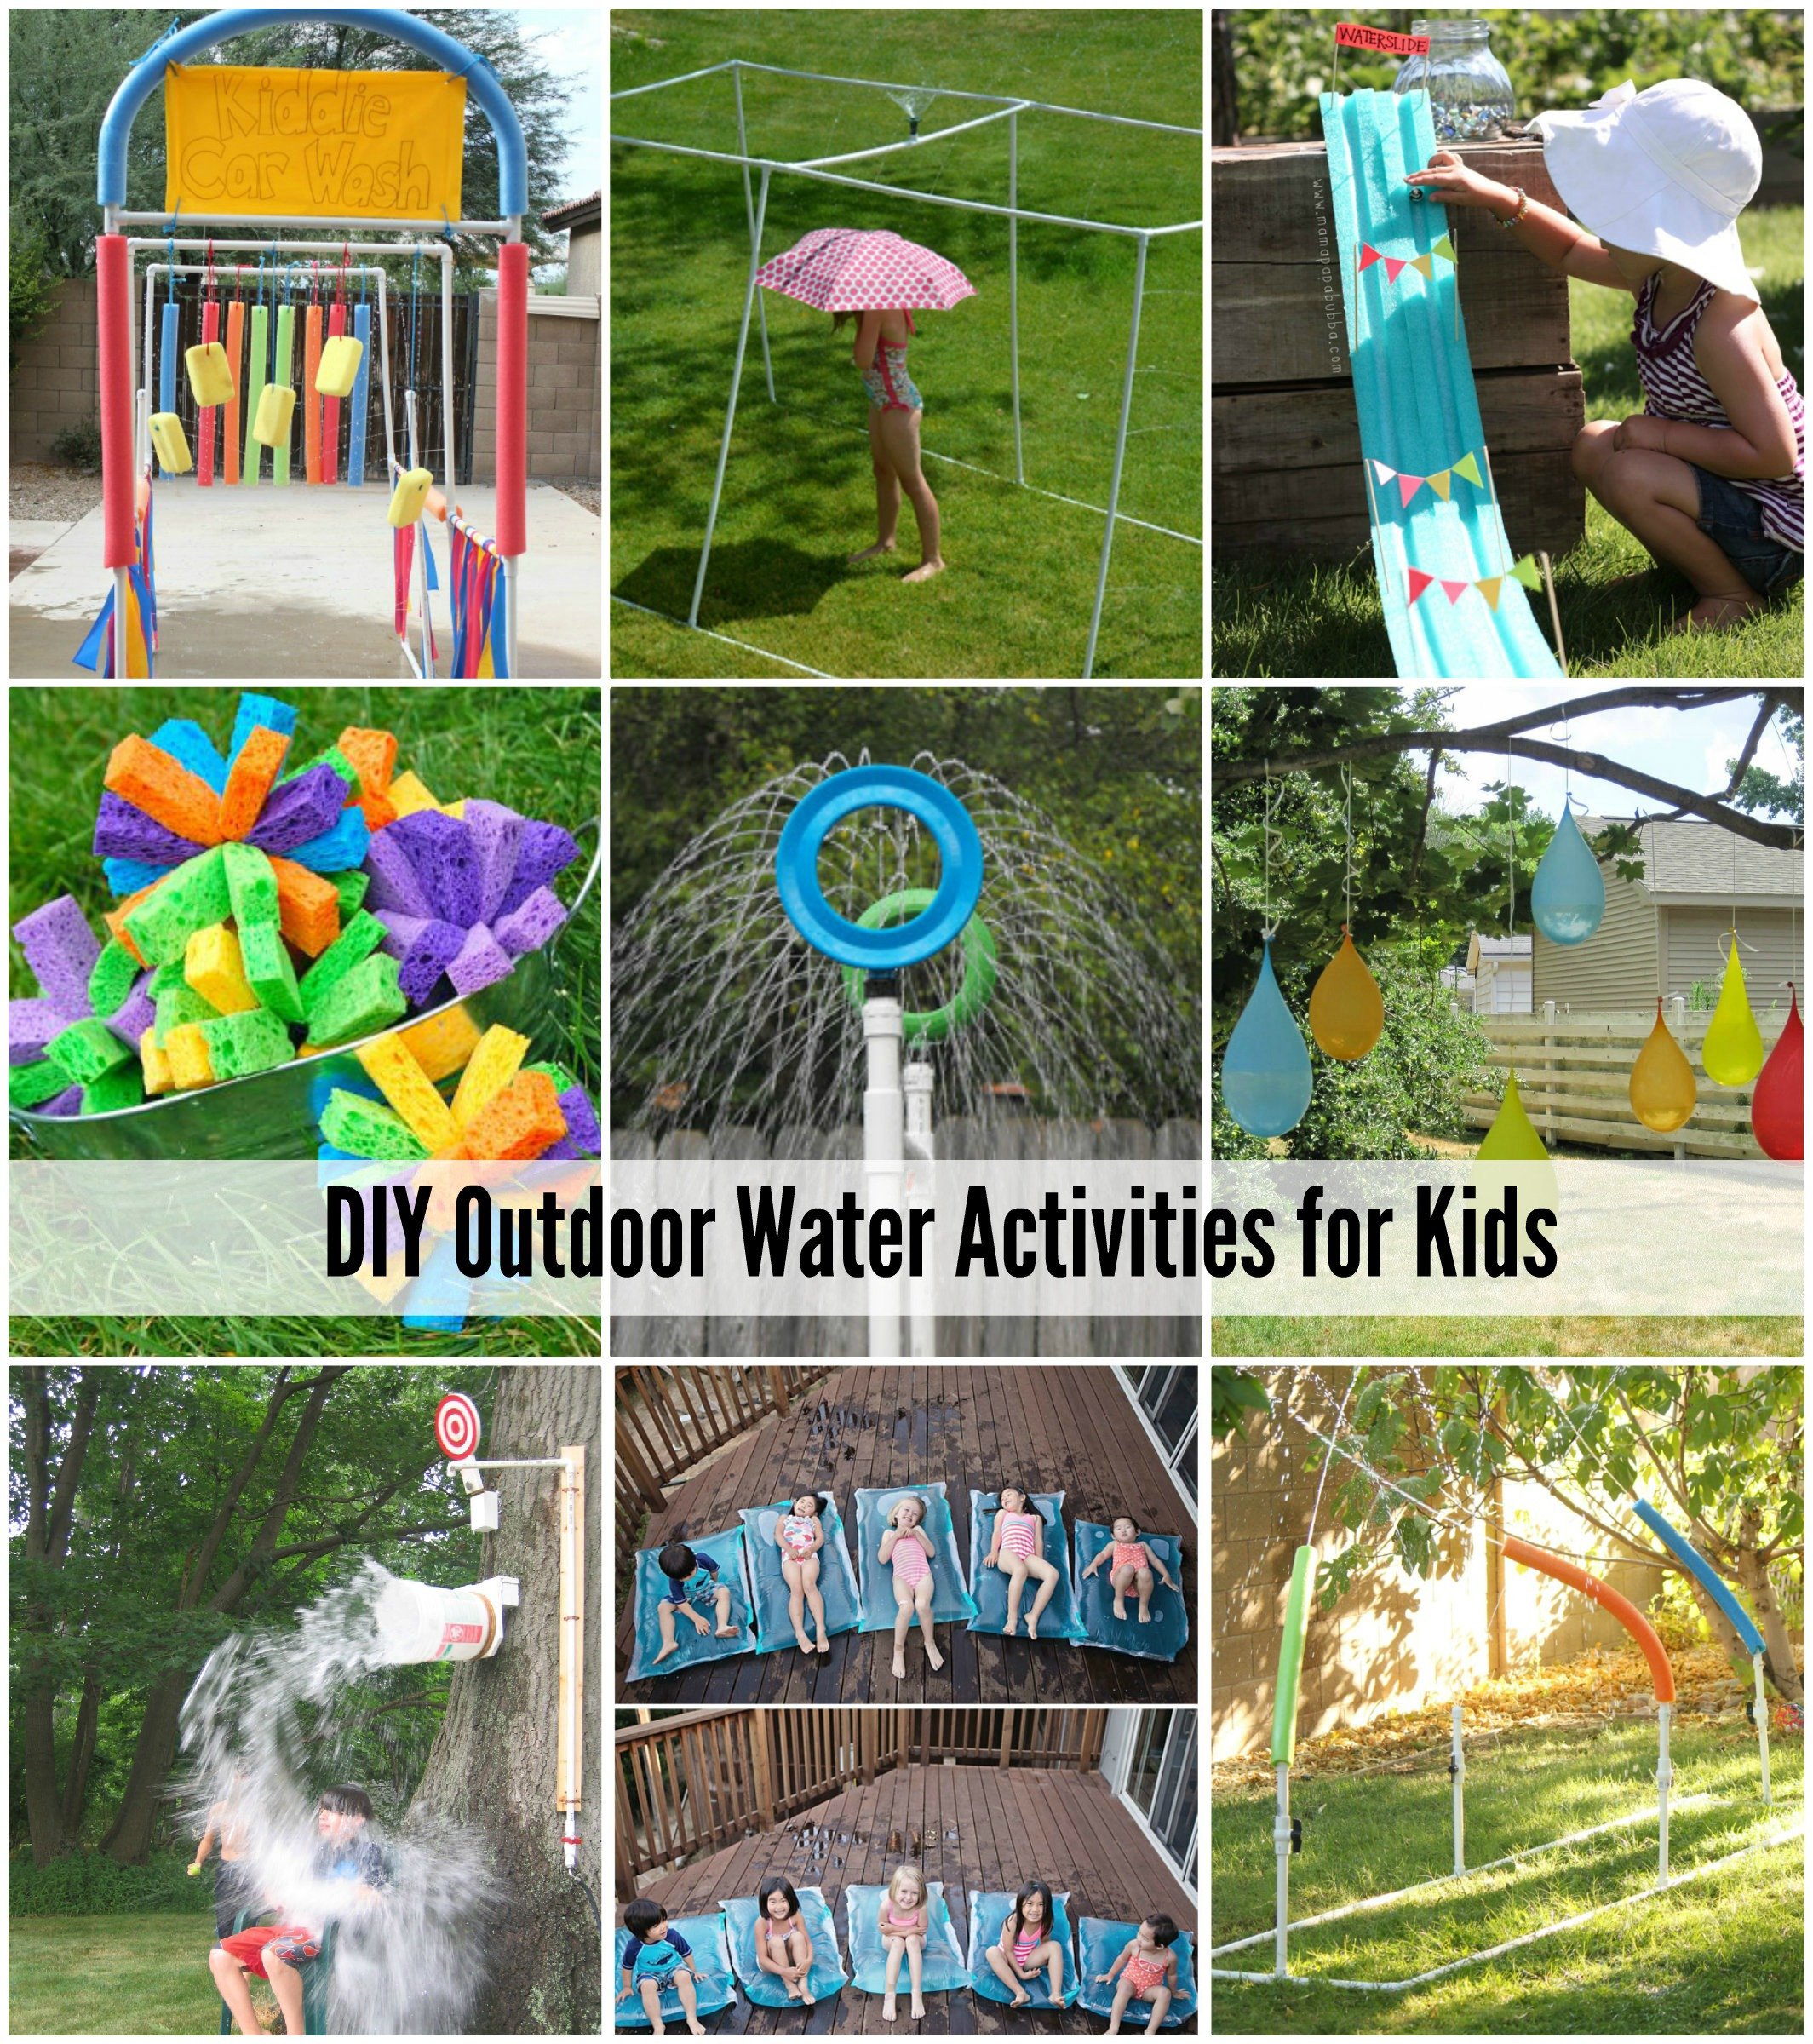 Best ideas about DIY Outdoor Games For Kids . Save or Pin 25 Water Games & Activities For Kids Now.